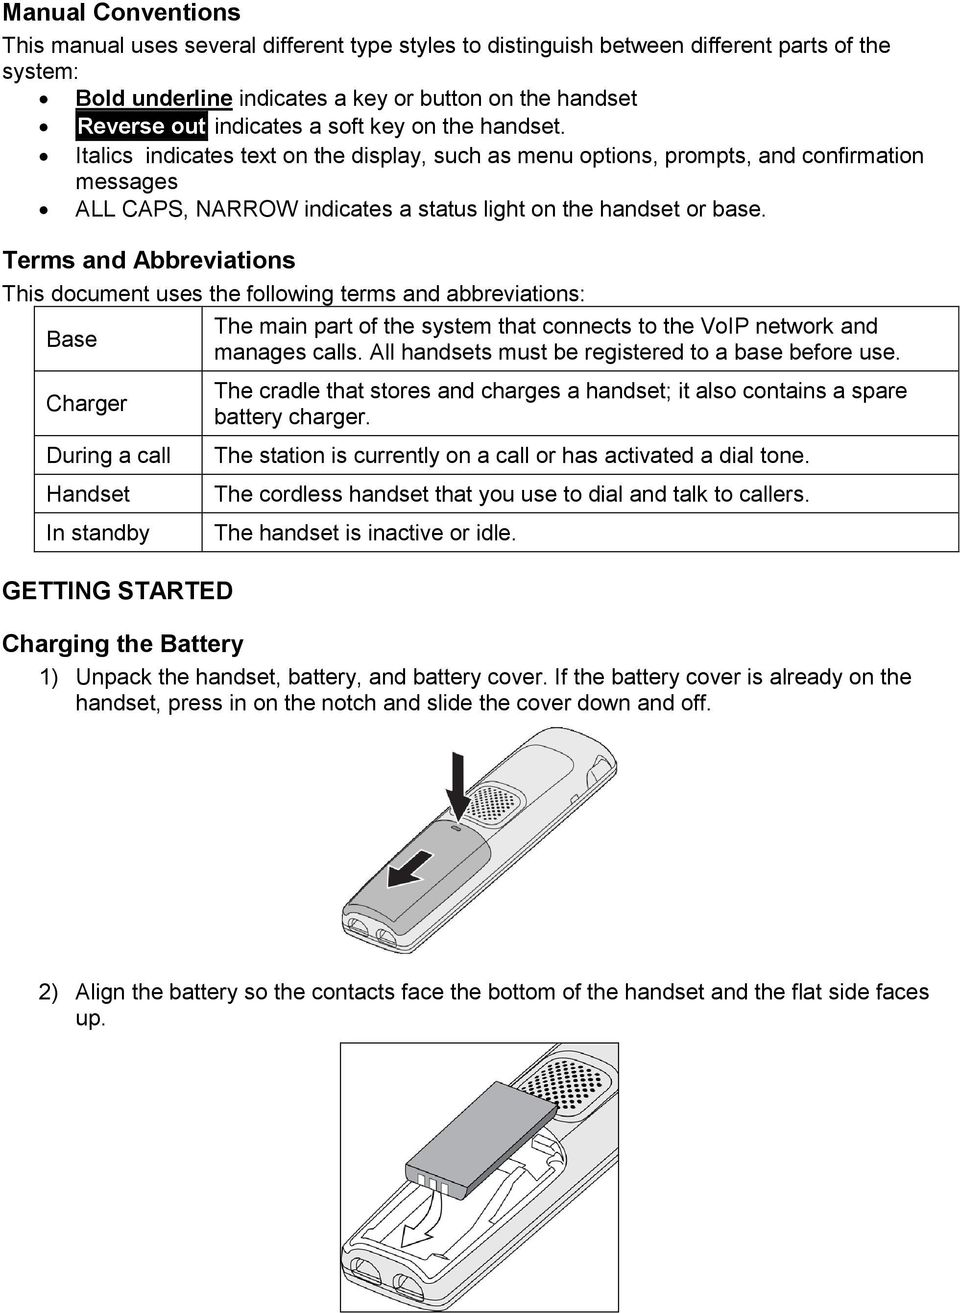 Terms and Abbreviations This document uses the following terms and abbreviations: Base Charger During a call Handset In standby GETTING STARTED The main part of the system that connects to the VoIP